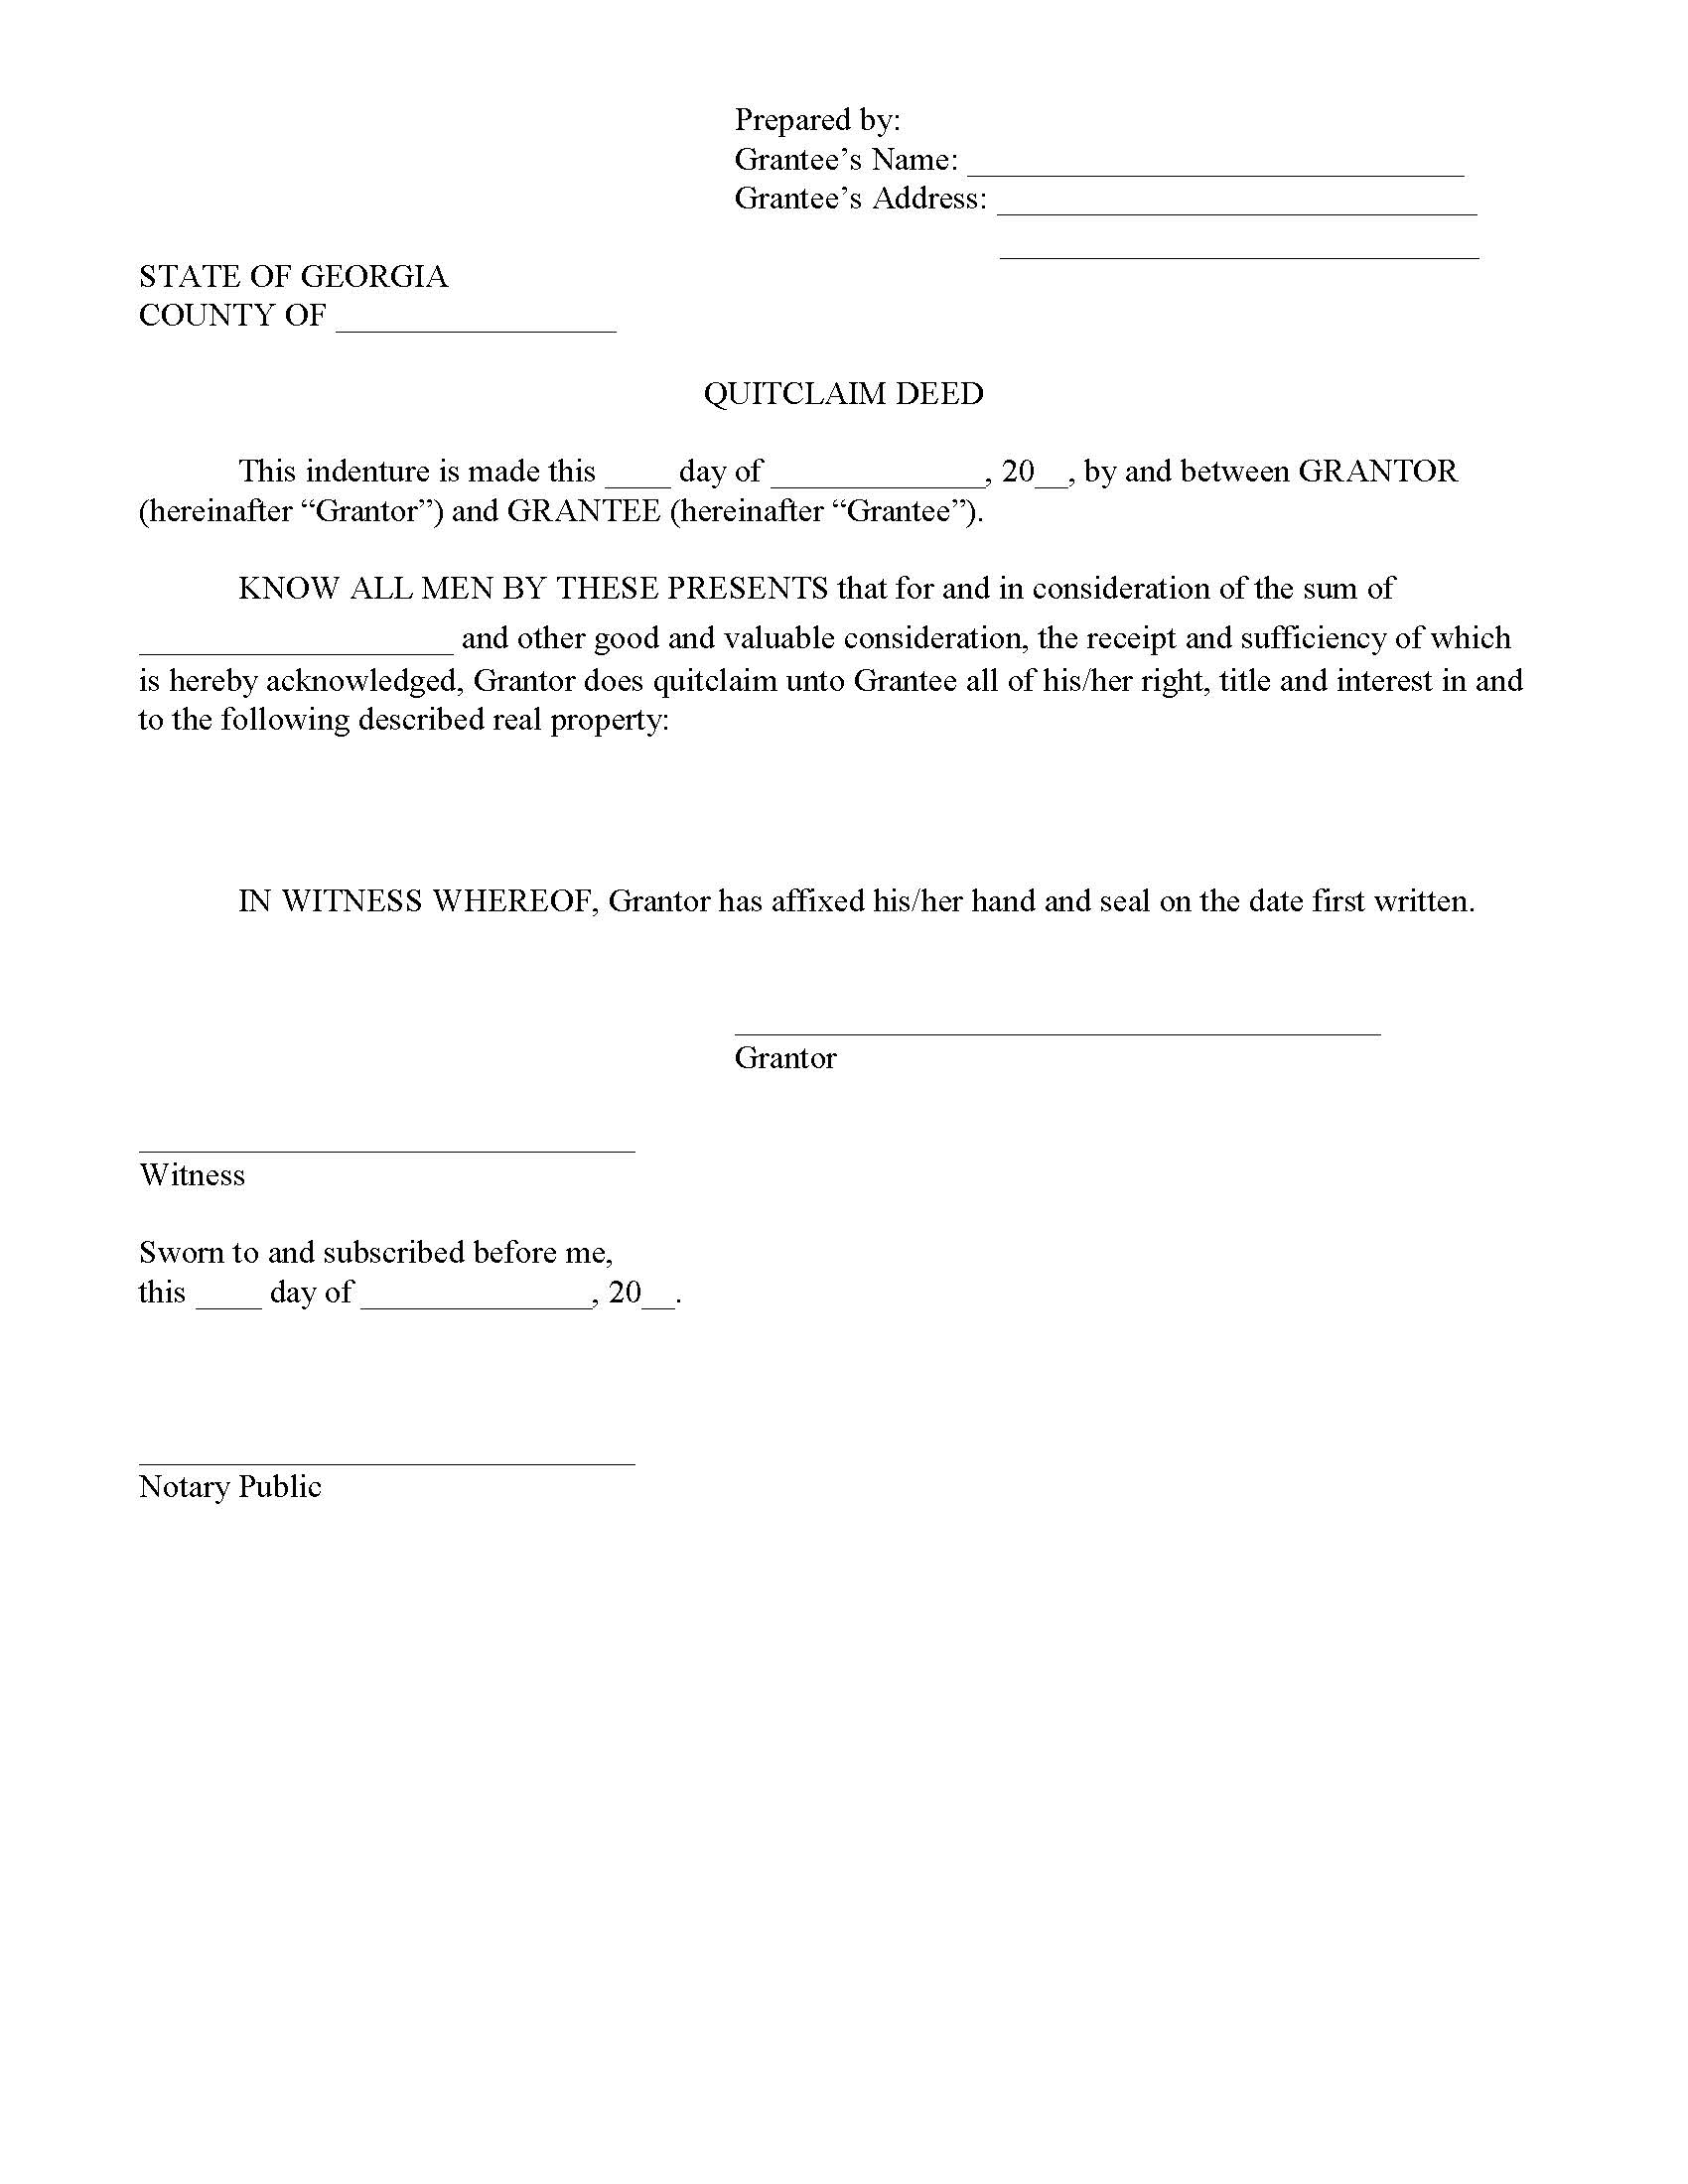 Georgia Quit Claim Deed Form - Deed Forms : Deed Forms